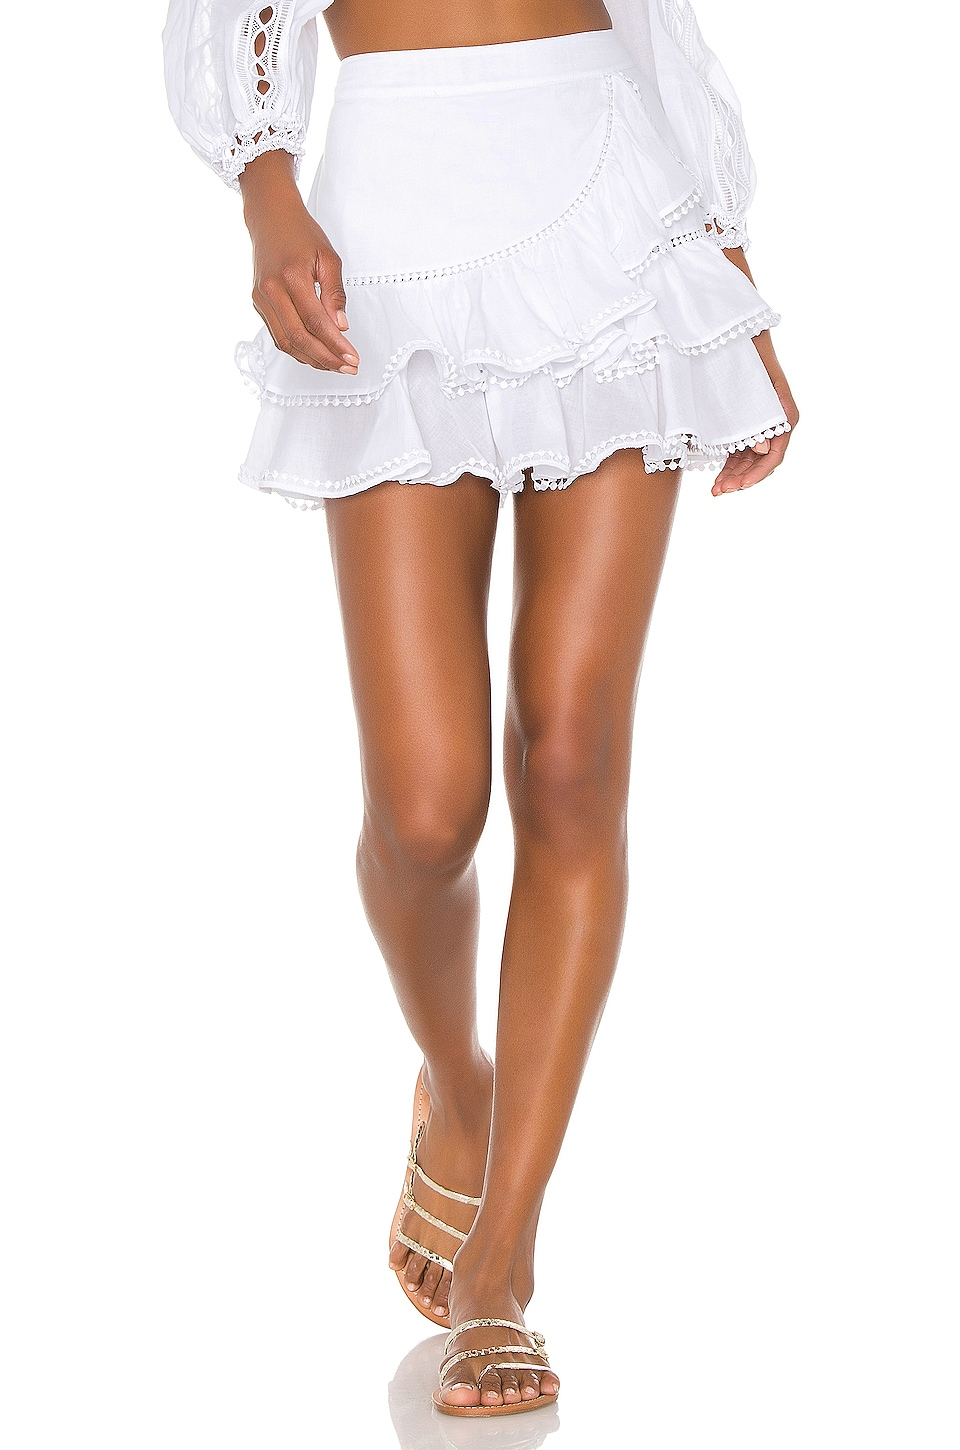 Charo Ruiz Ibiza Fera Skirt in White